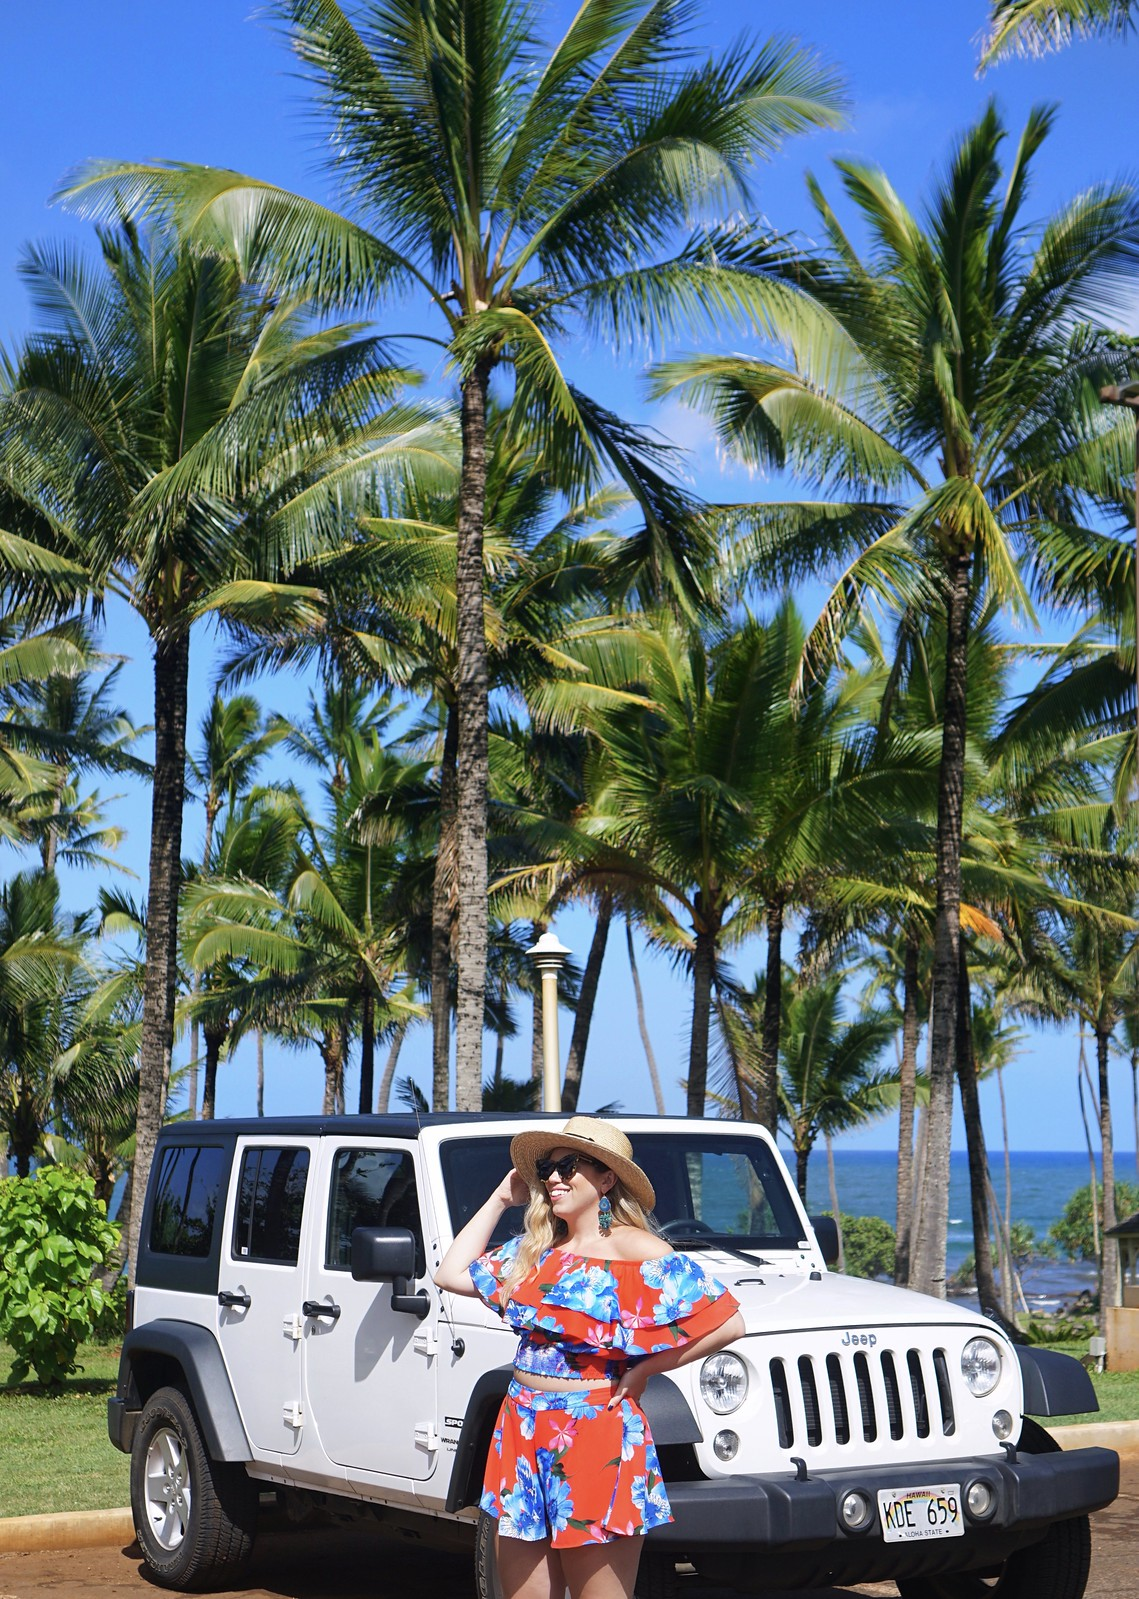 Red Floral Two Piece Set White Jeep Hawaii Outfit Hilton Garden Inn Kauai Wailua Bay Best Things to do in Kauai Hawaii